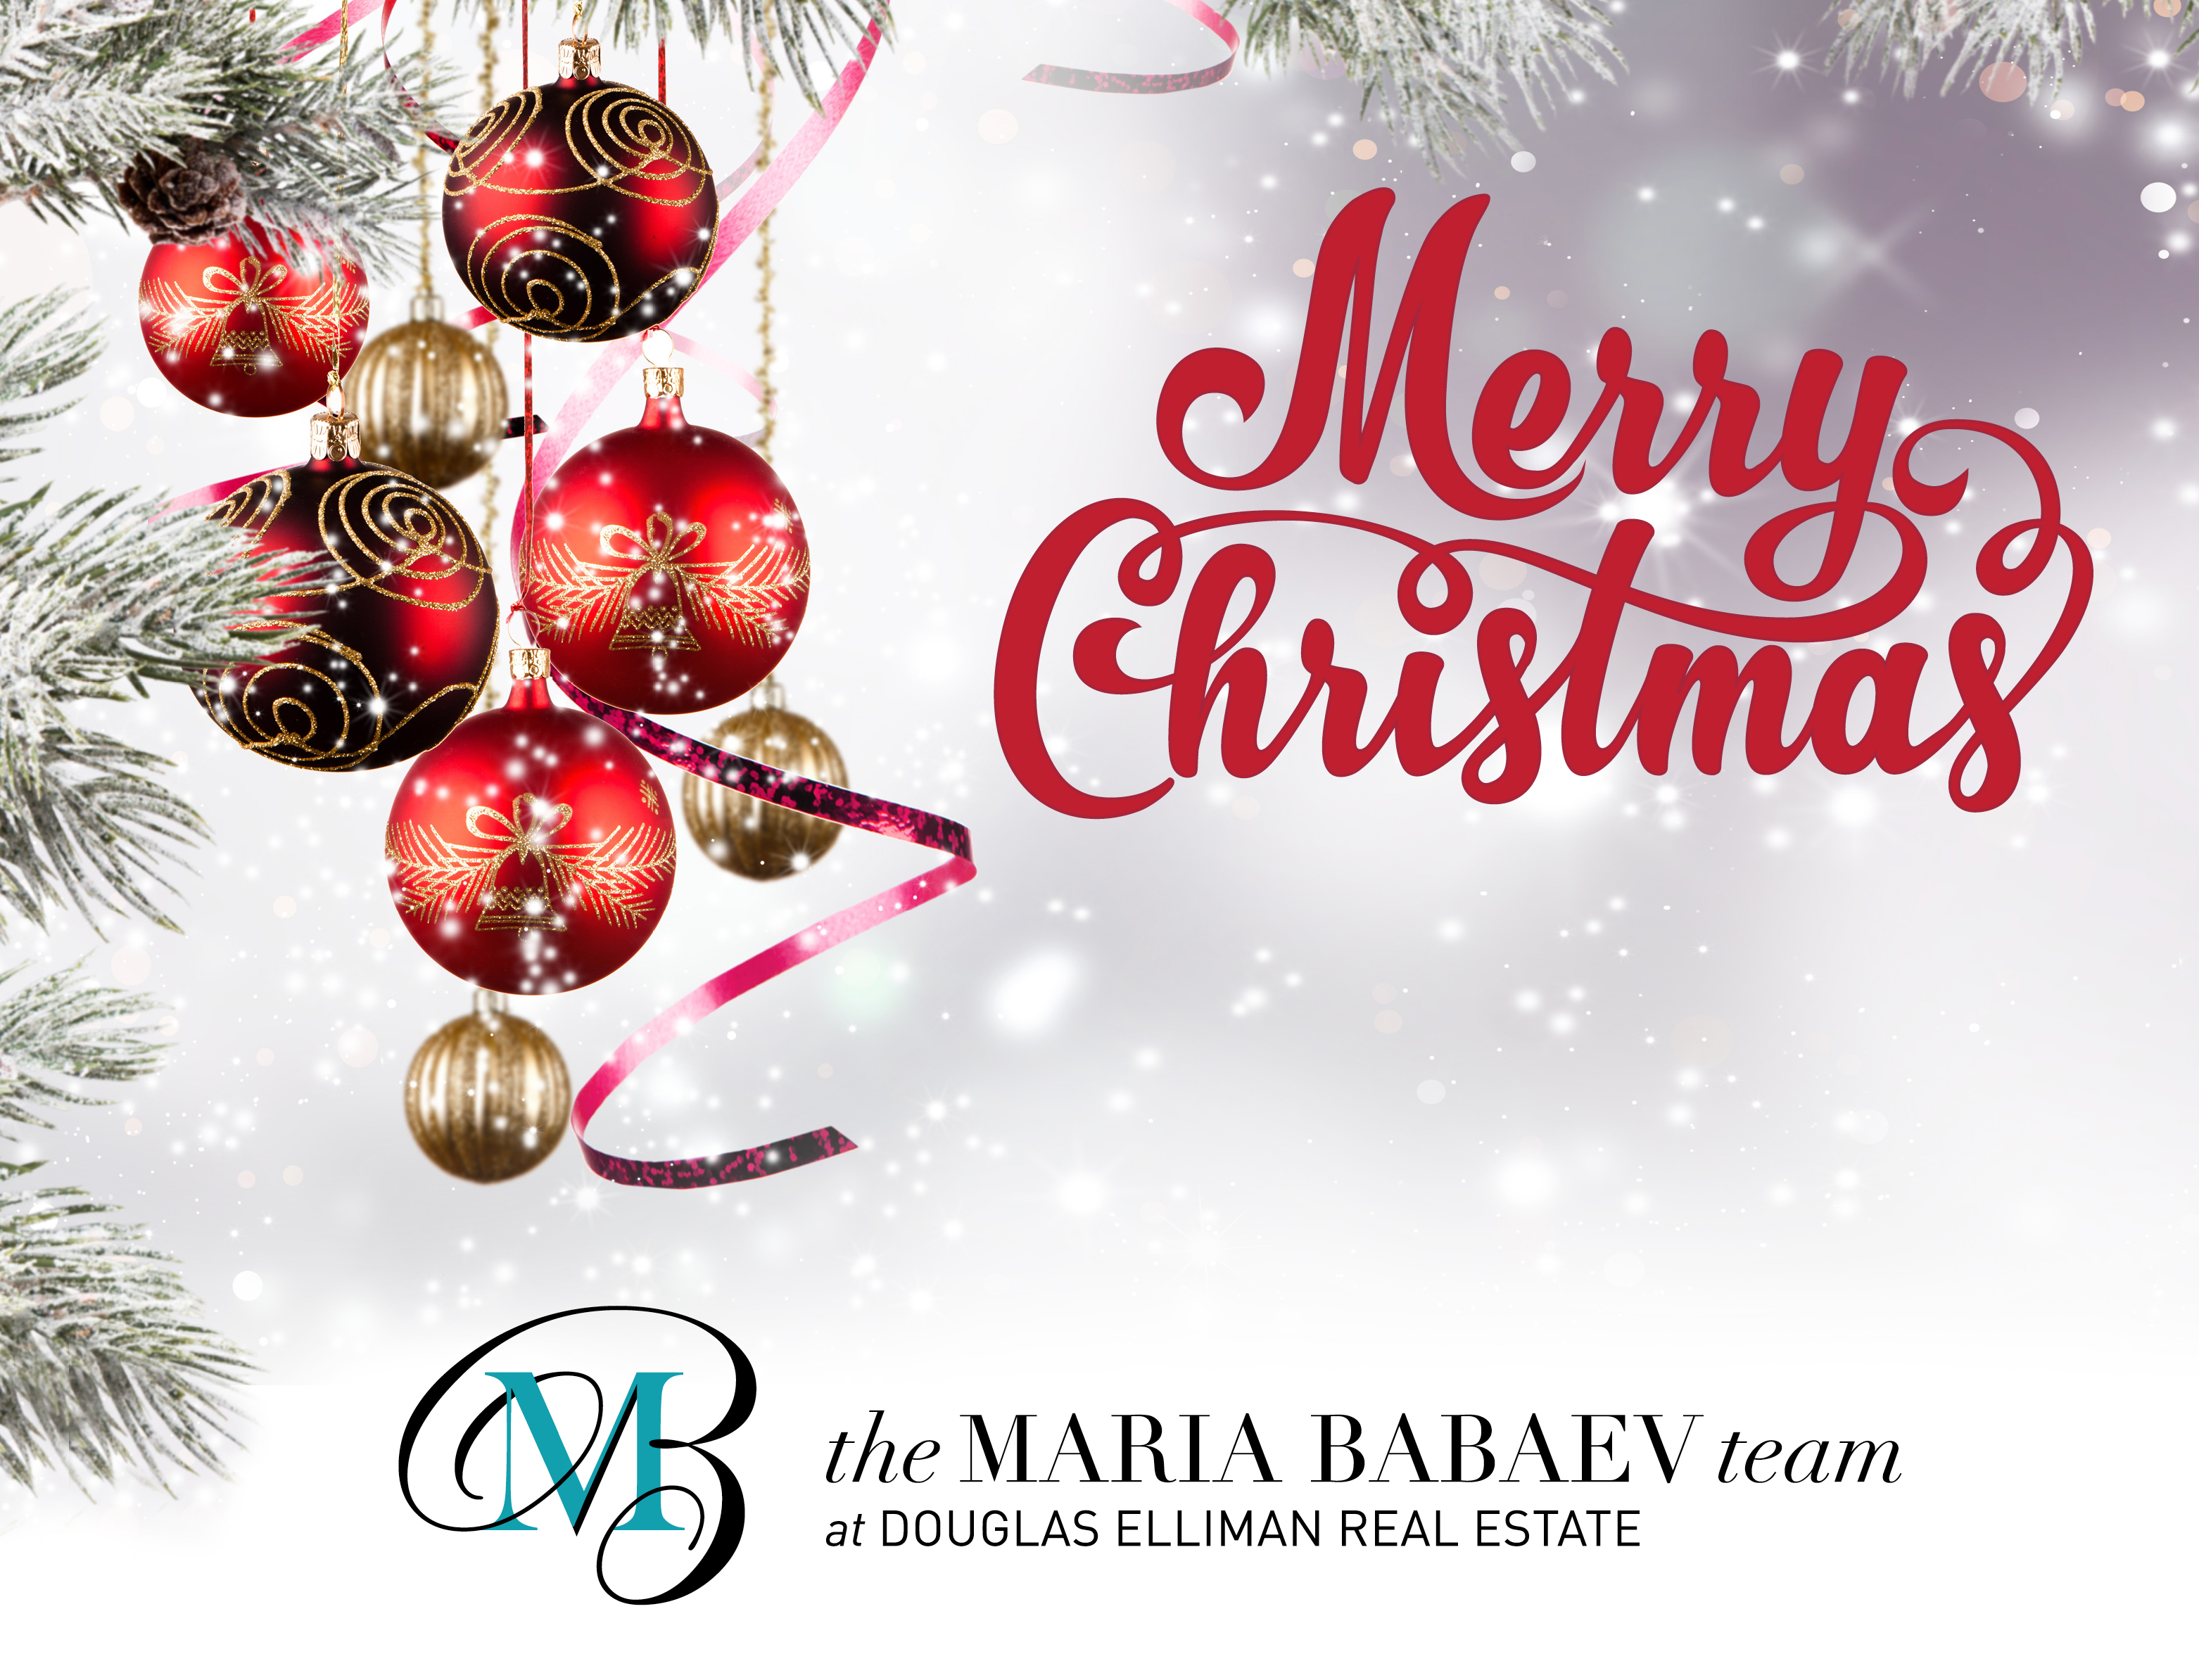 Merry Christmas From The Maria Babaev Team!